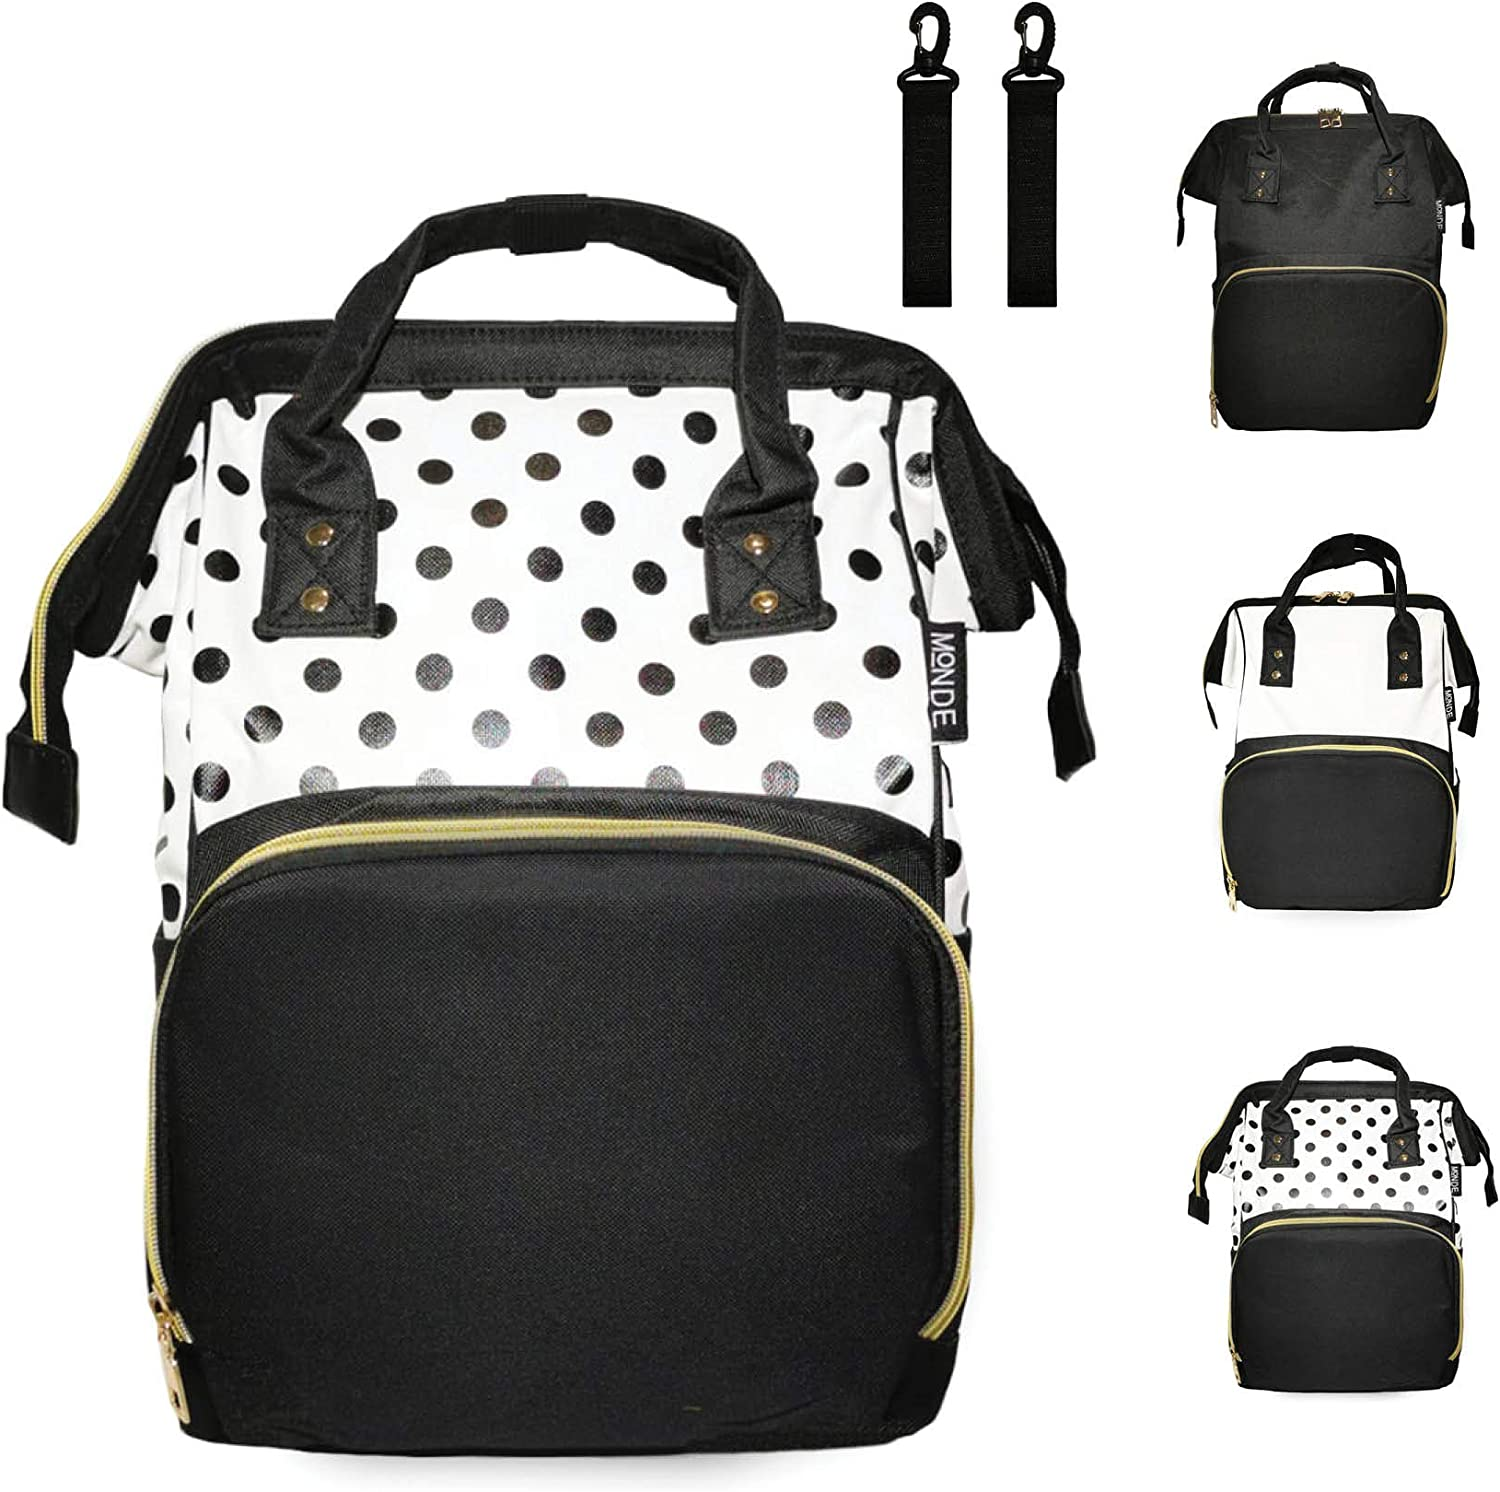 Toddler Water Resistant And Insulated Diaper Bag Backpack Boys And Girls White Multifunction Diaper Bag Backpack With Stroller Straps Best For Mom